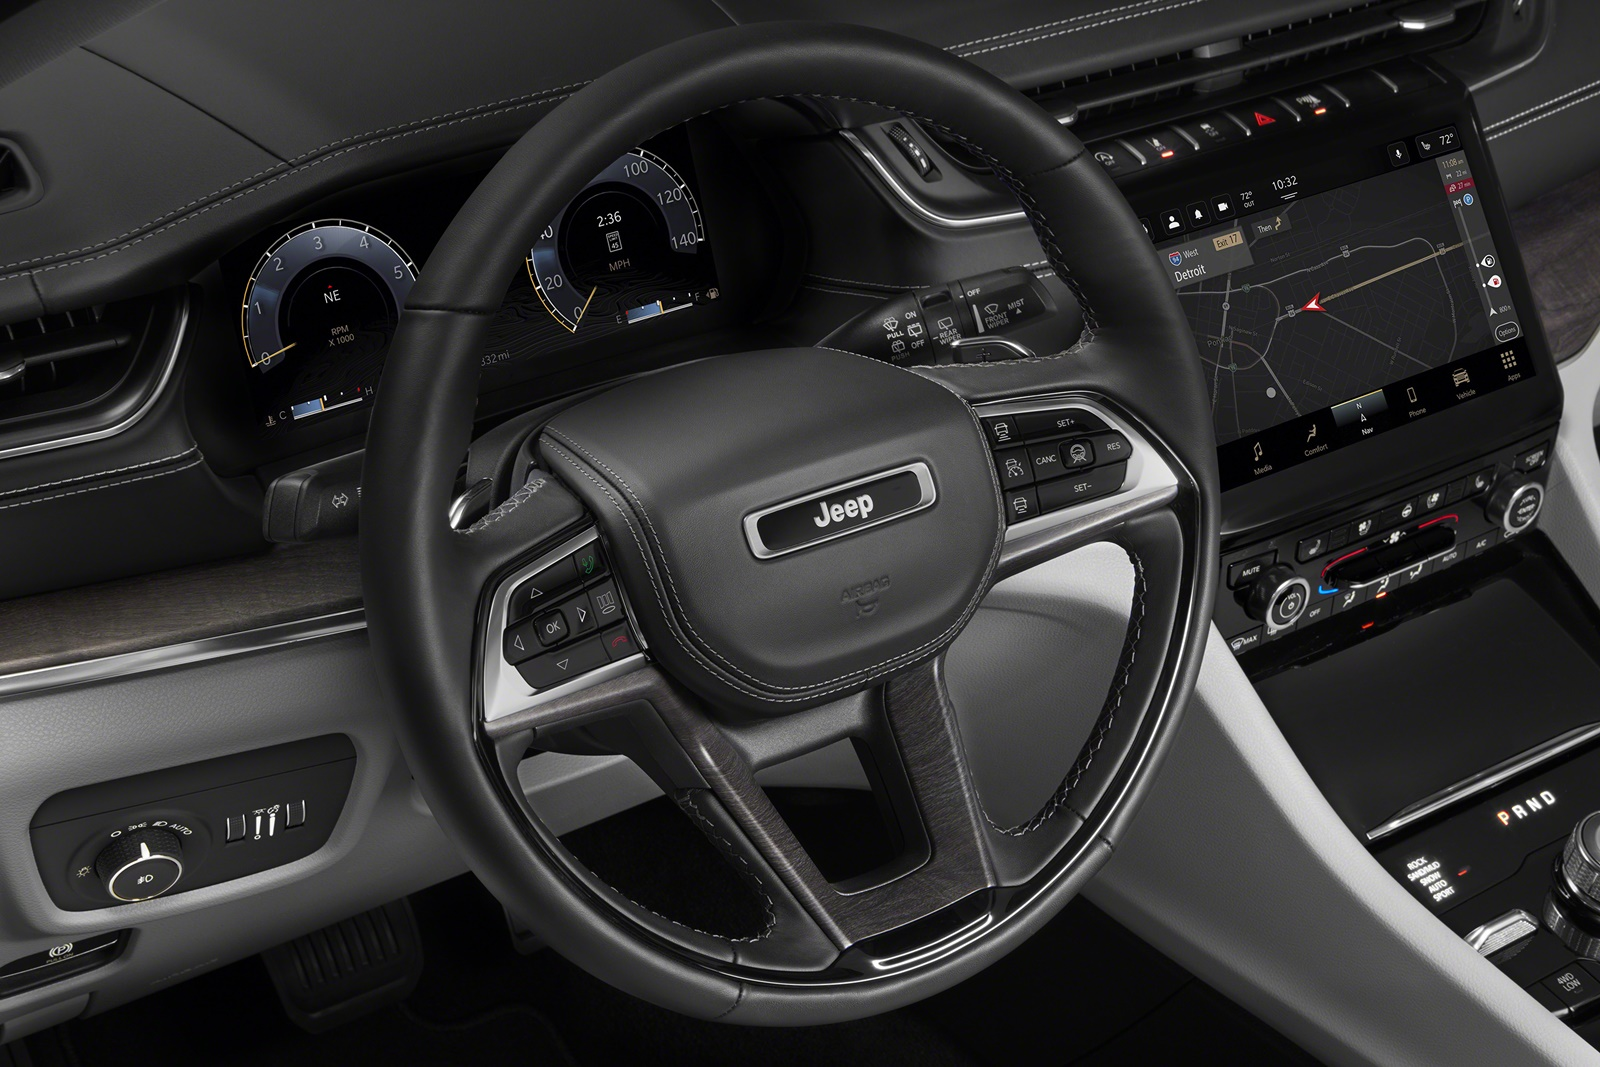 The all-new 2021 Jeep® Grand Cherokee L Overland leather-wrapped multifunction steering wheel complements the new finely crafted leather-wrapped, stitched instrument panel.